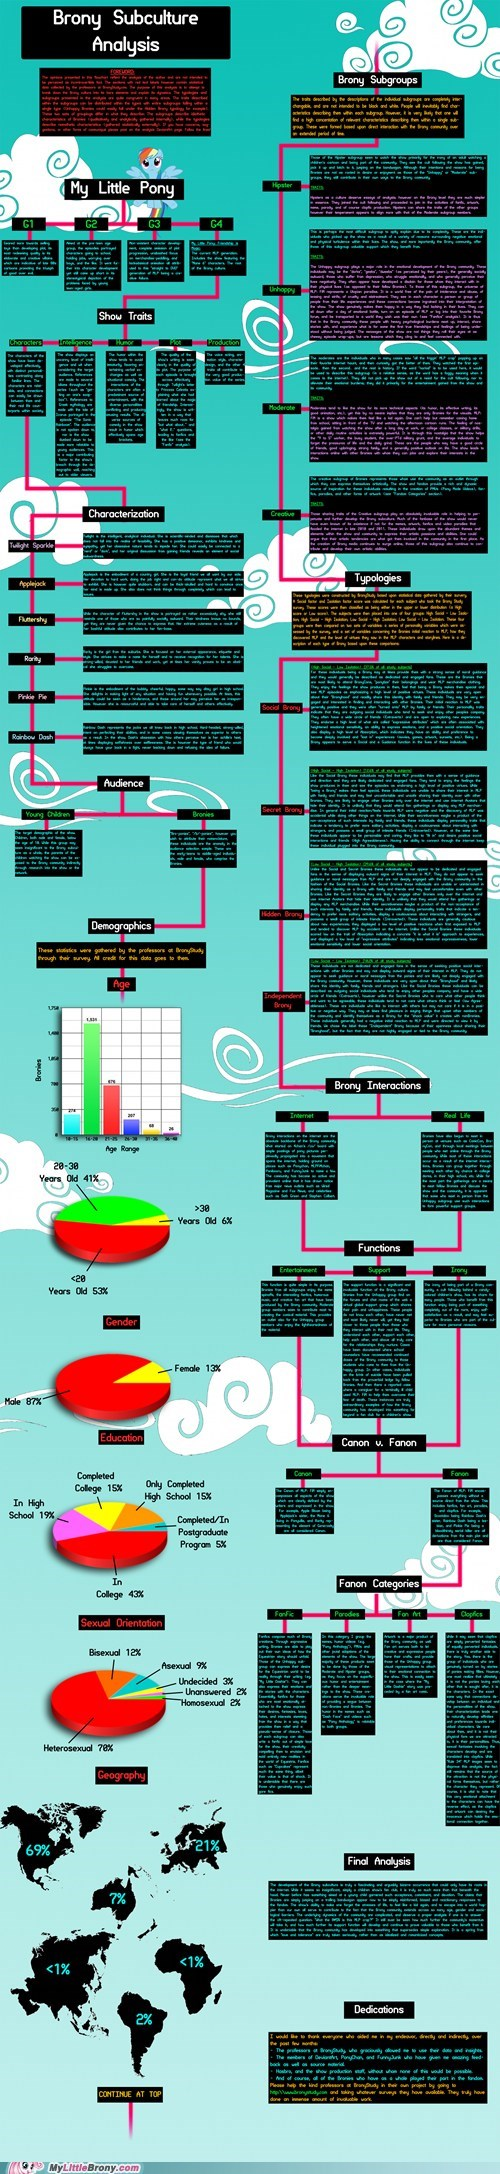 analysis awesome Bronies graphjam graphscharts infographic subculture - 5764335616